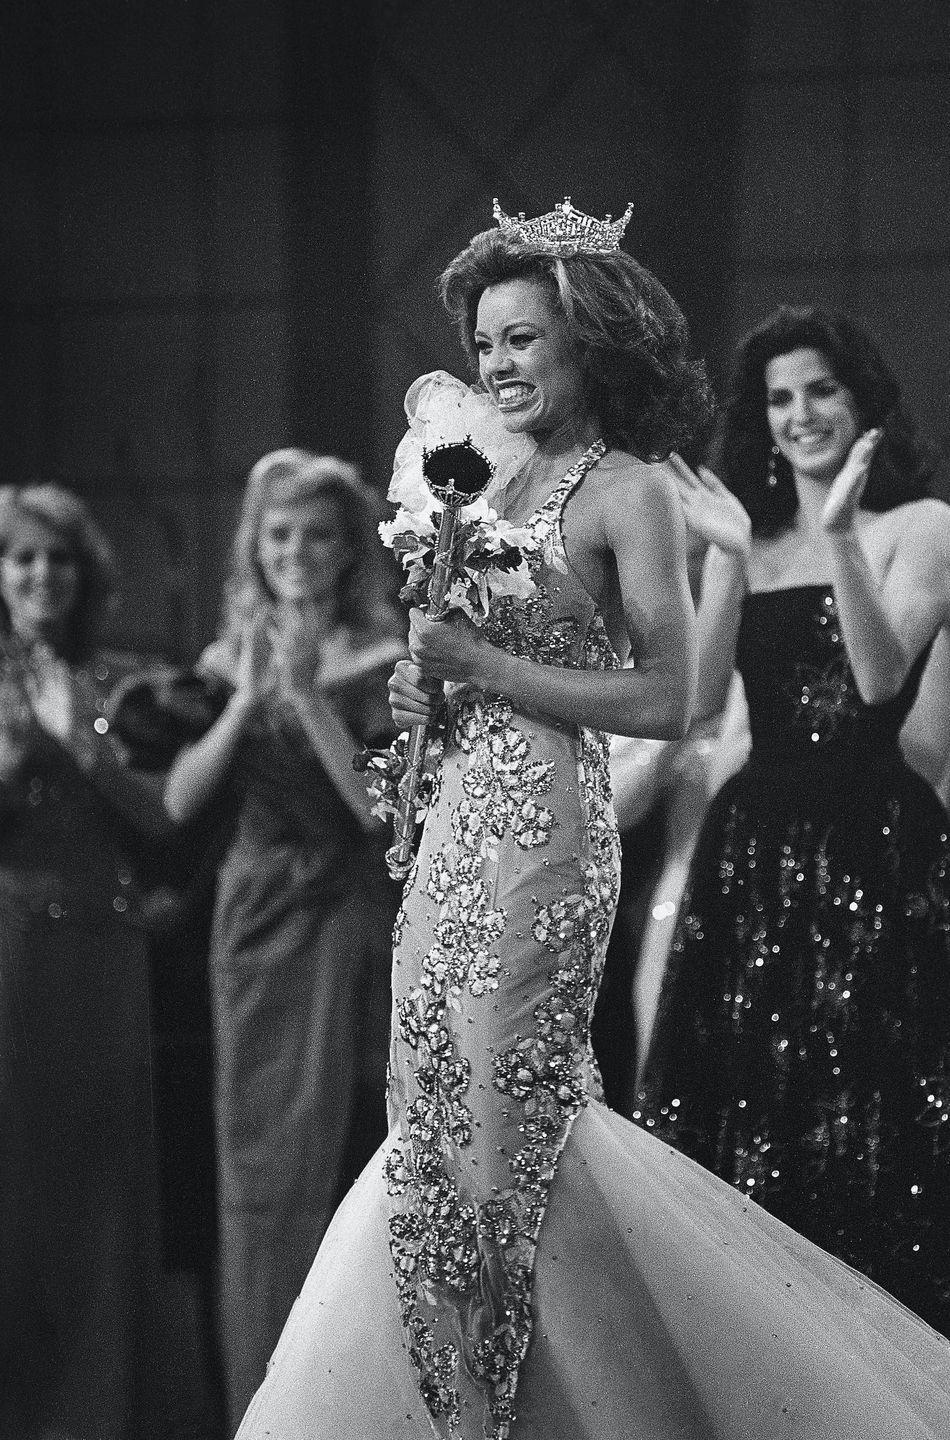 <p>A young Vanessa Williams not only looked flawless in this mermaid-style evening gown when she represented New York in 1984, but she also made history as the first African American woman to win the title. </p>